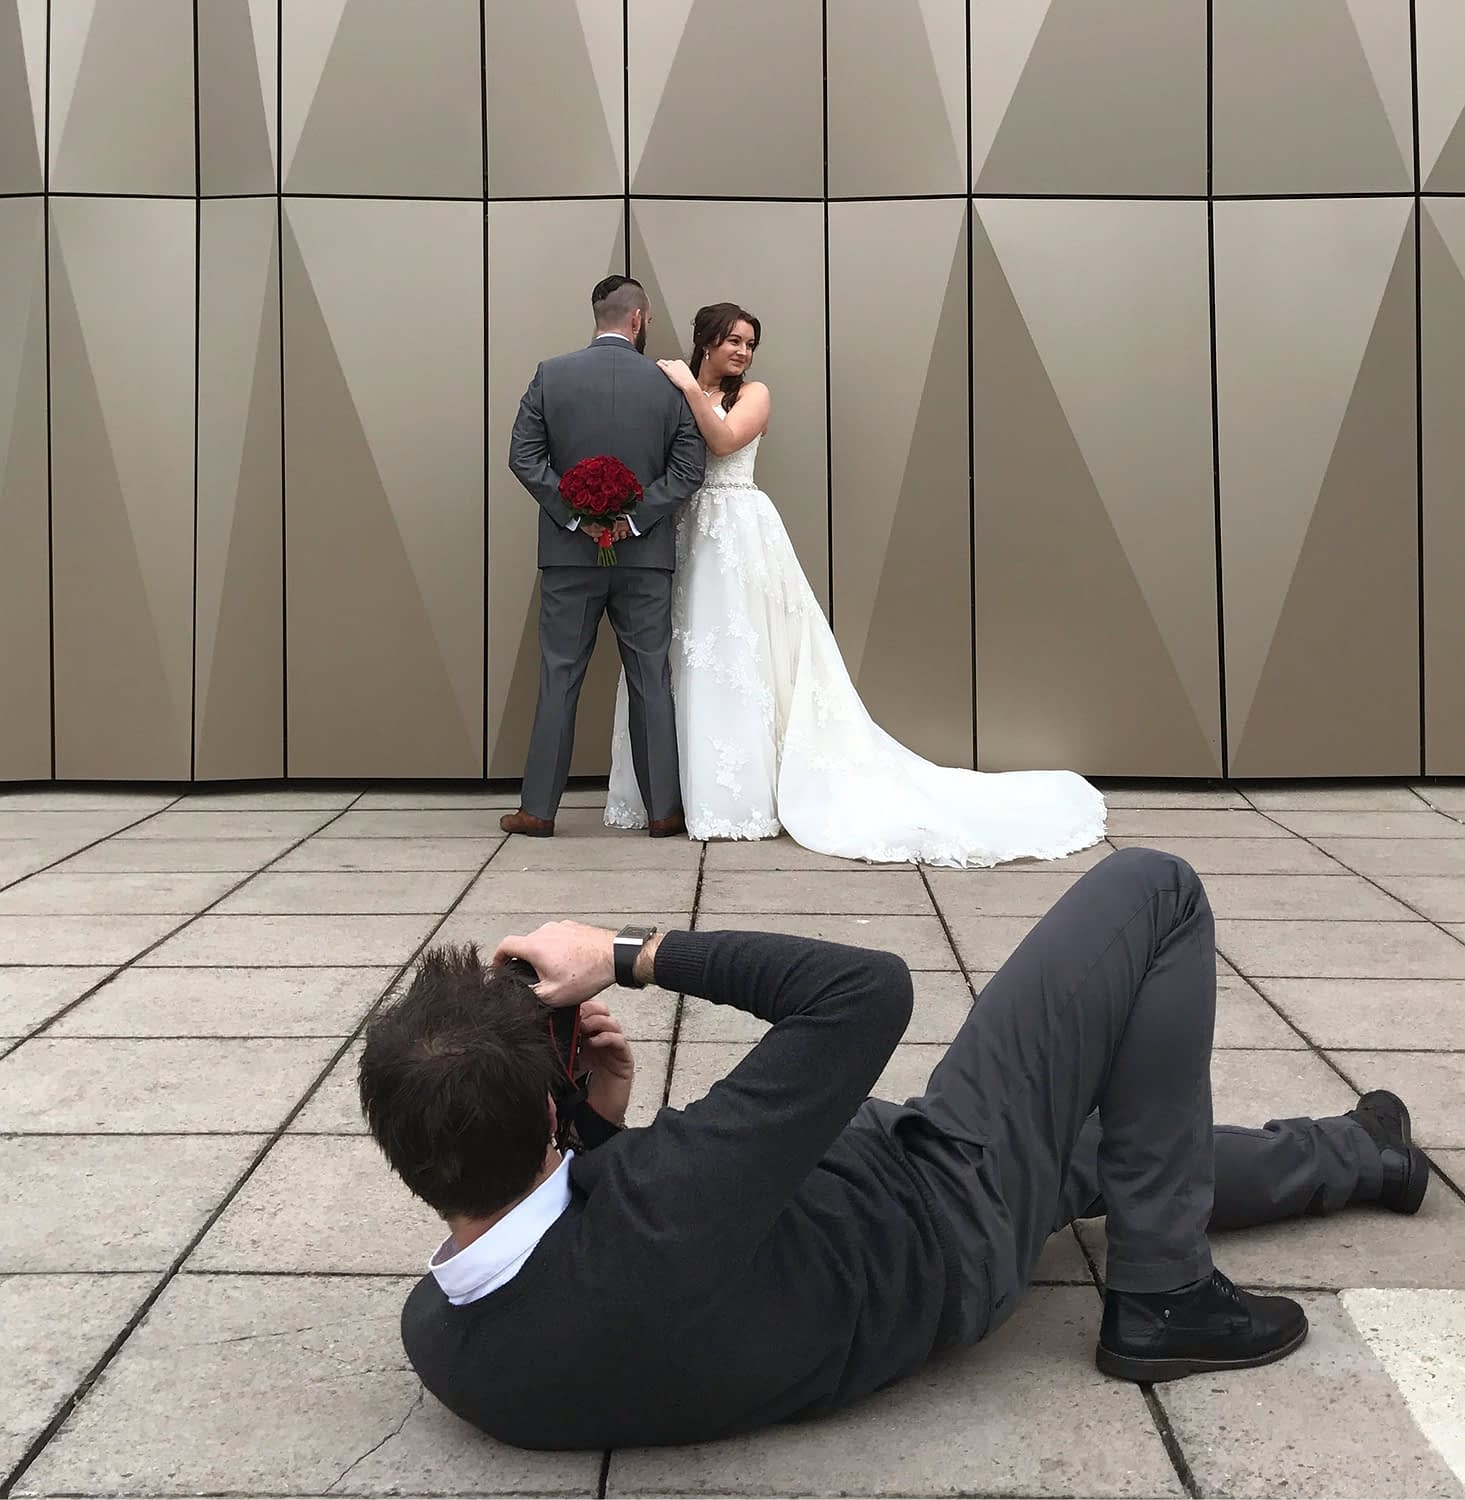 photographer laying down photographing wedding couple